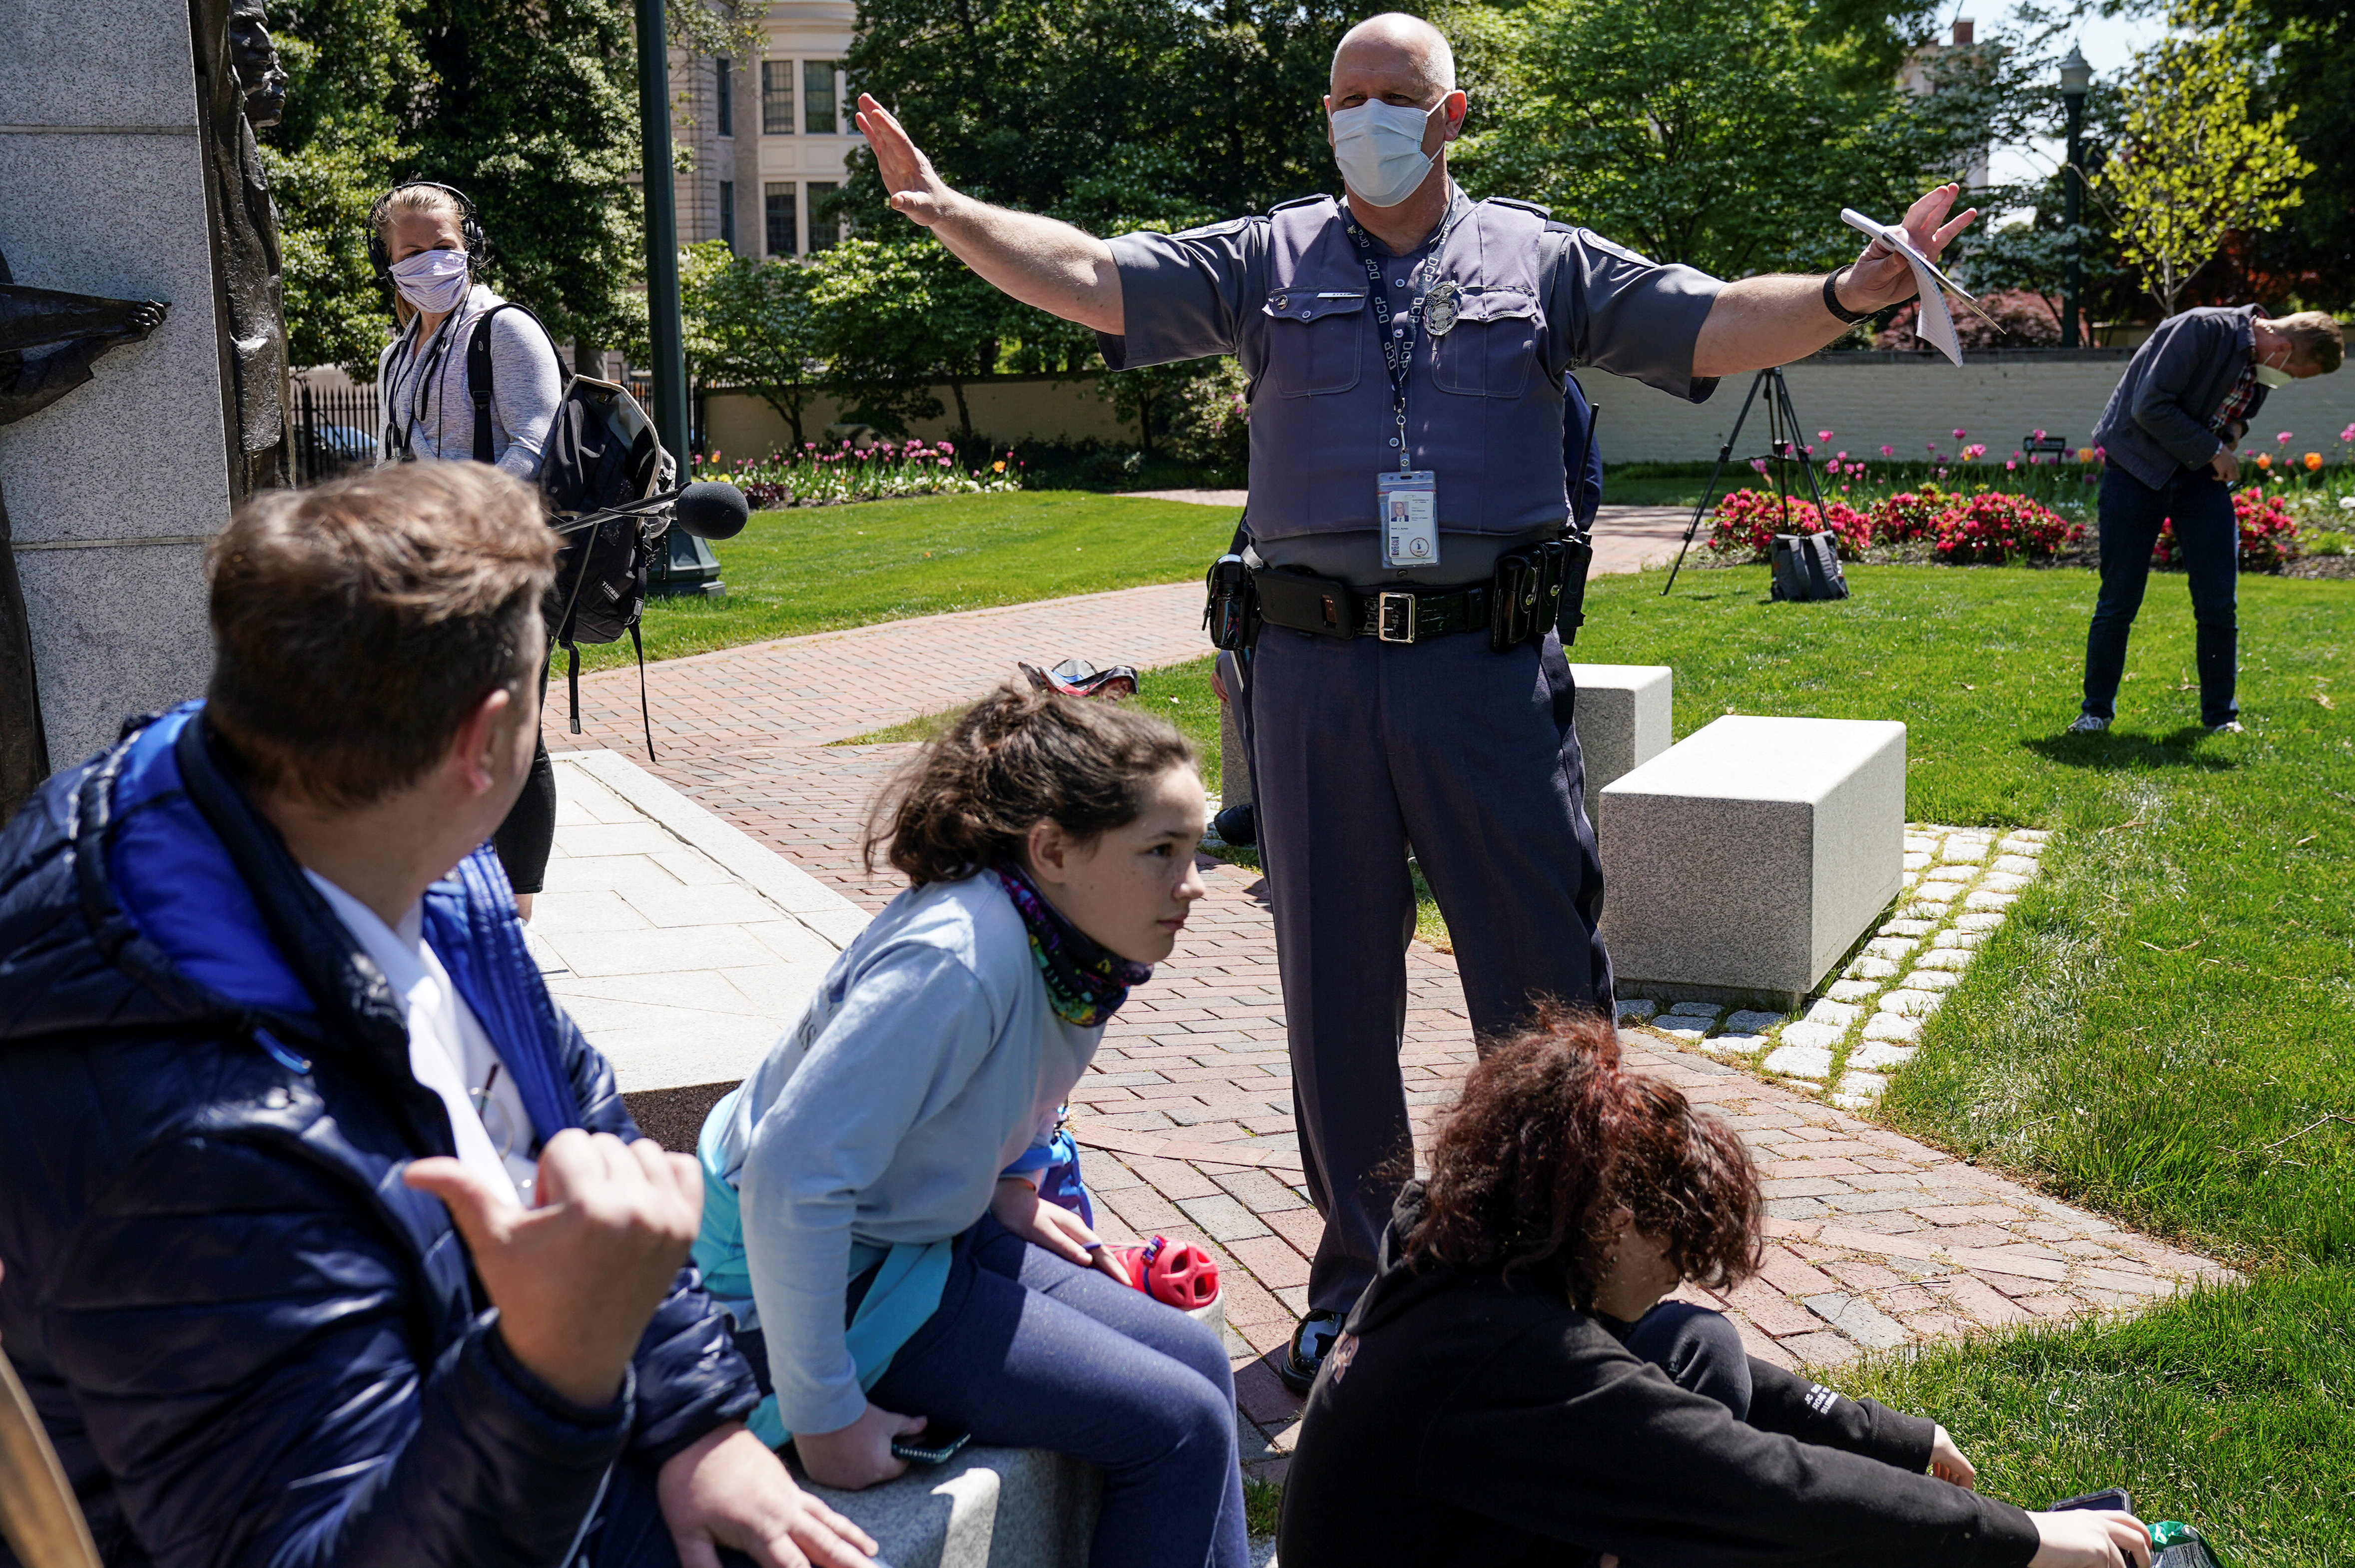 A police officer asks demonstrators to spread out as they gather in opposition to Virginia's stay-at-home order and business closures in the wake of the coronavirus disease (COVID-19) outbreak, during a protest against the lockdown measures in Richmond, Virginia, U.S., Apr. 16, 2020. REUTERS/Kevin Lamarque